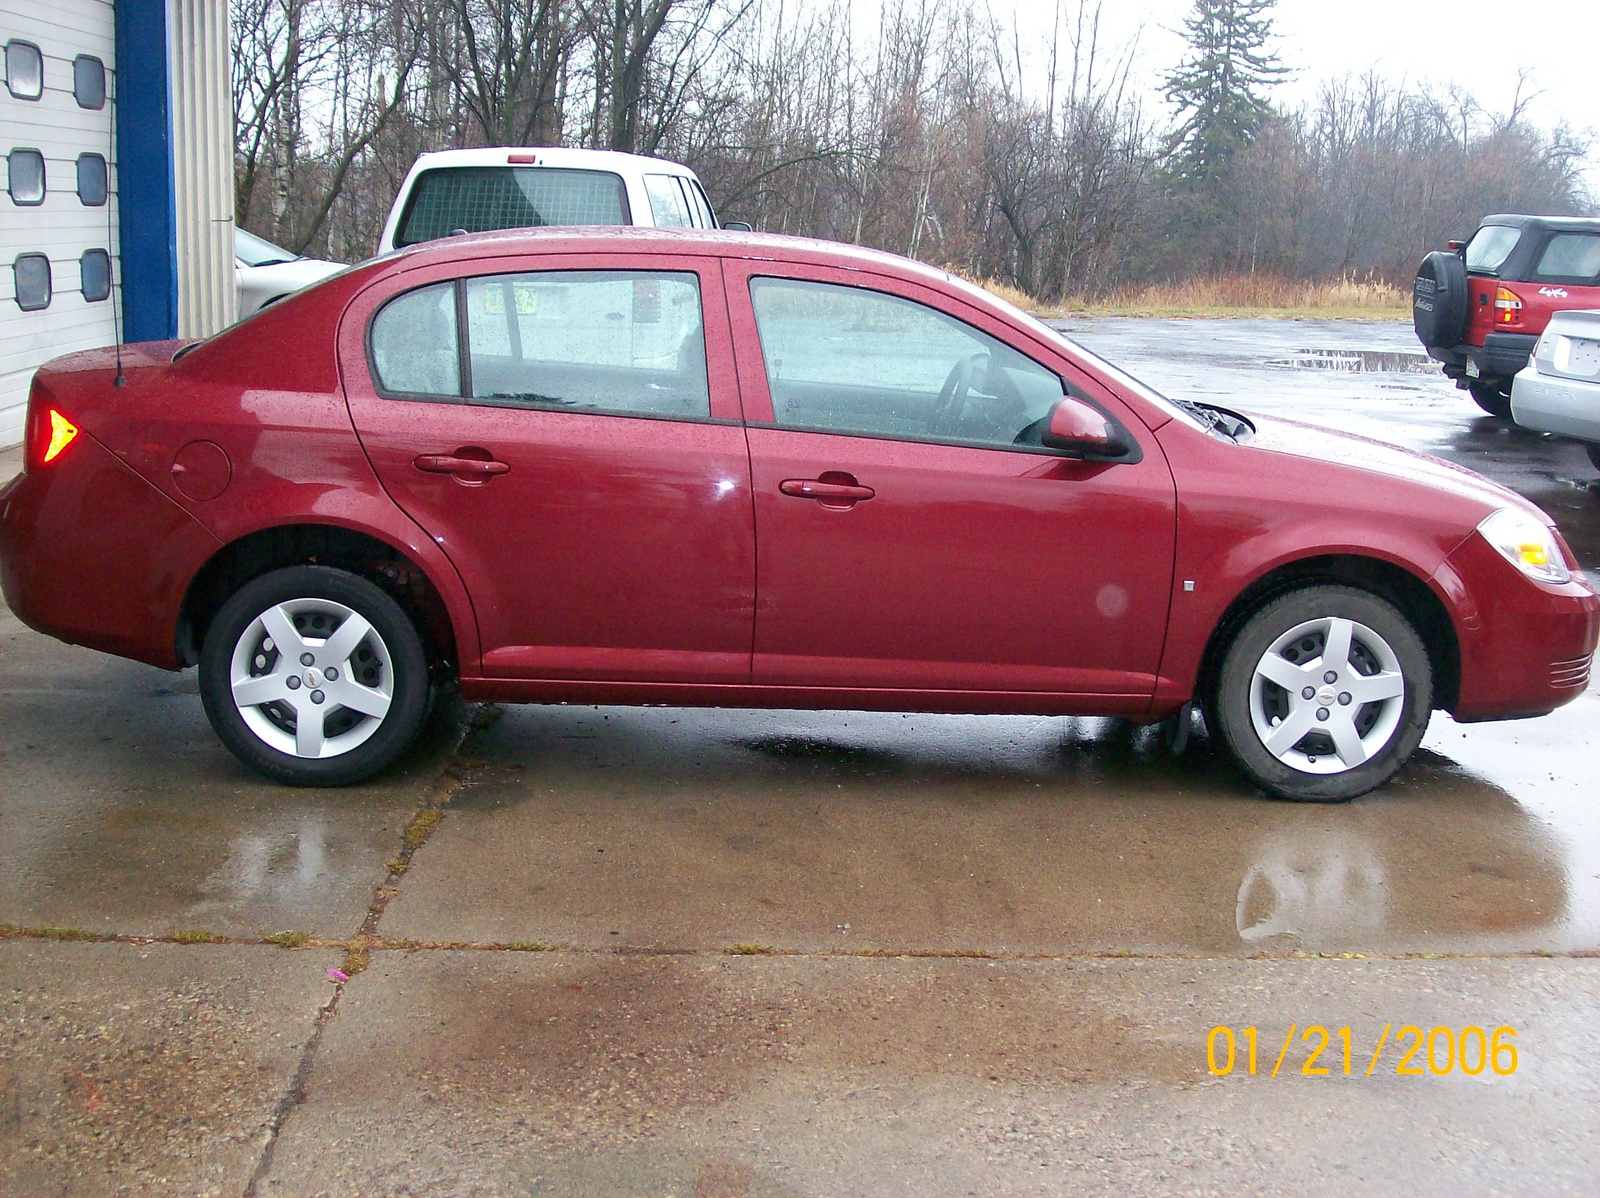 2008 chevrolet cobalt exterior pictures cargurus. Cars Review. Best American Auto & Cars Review